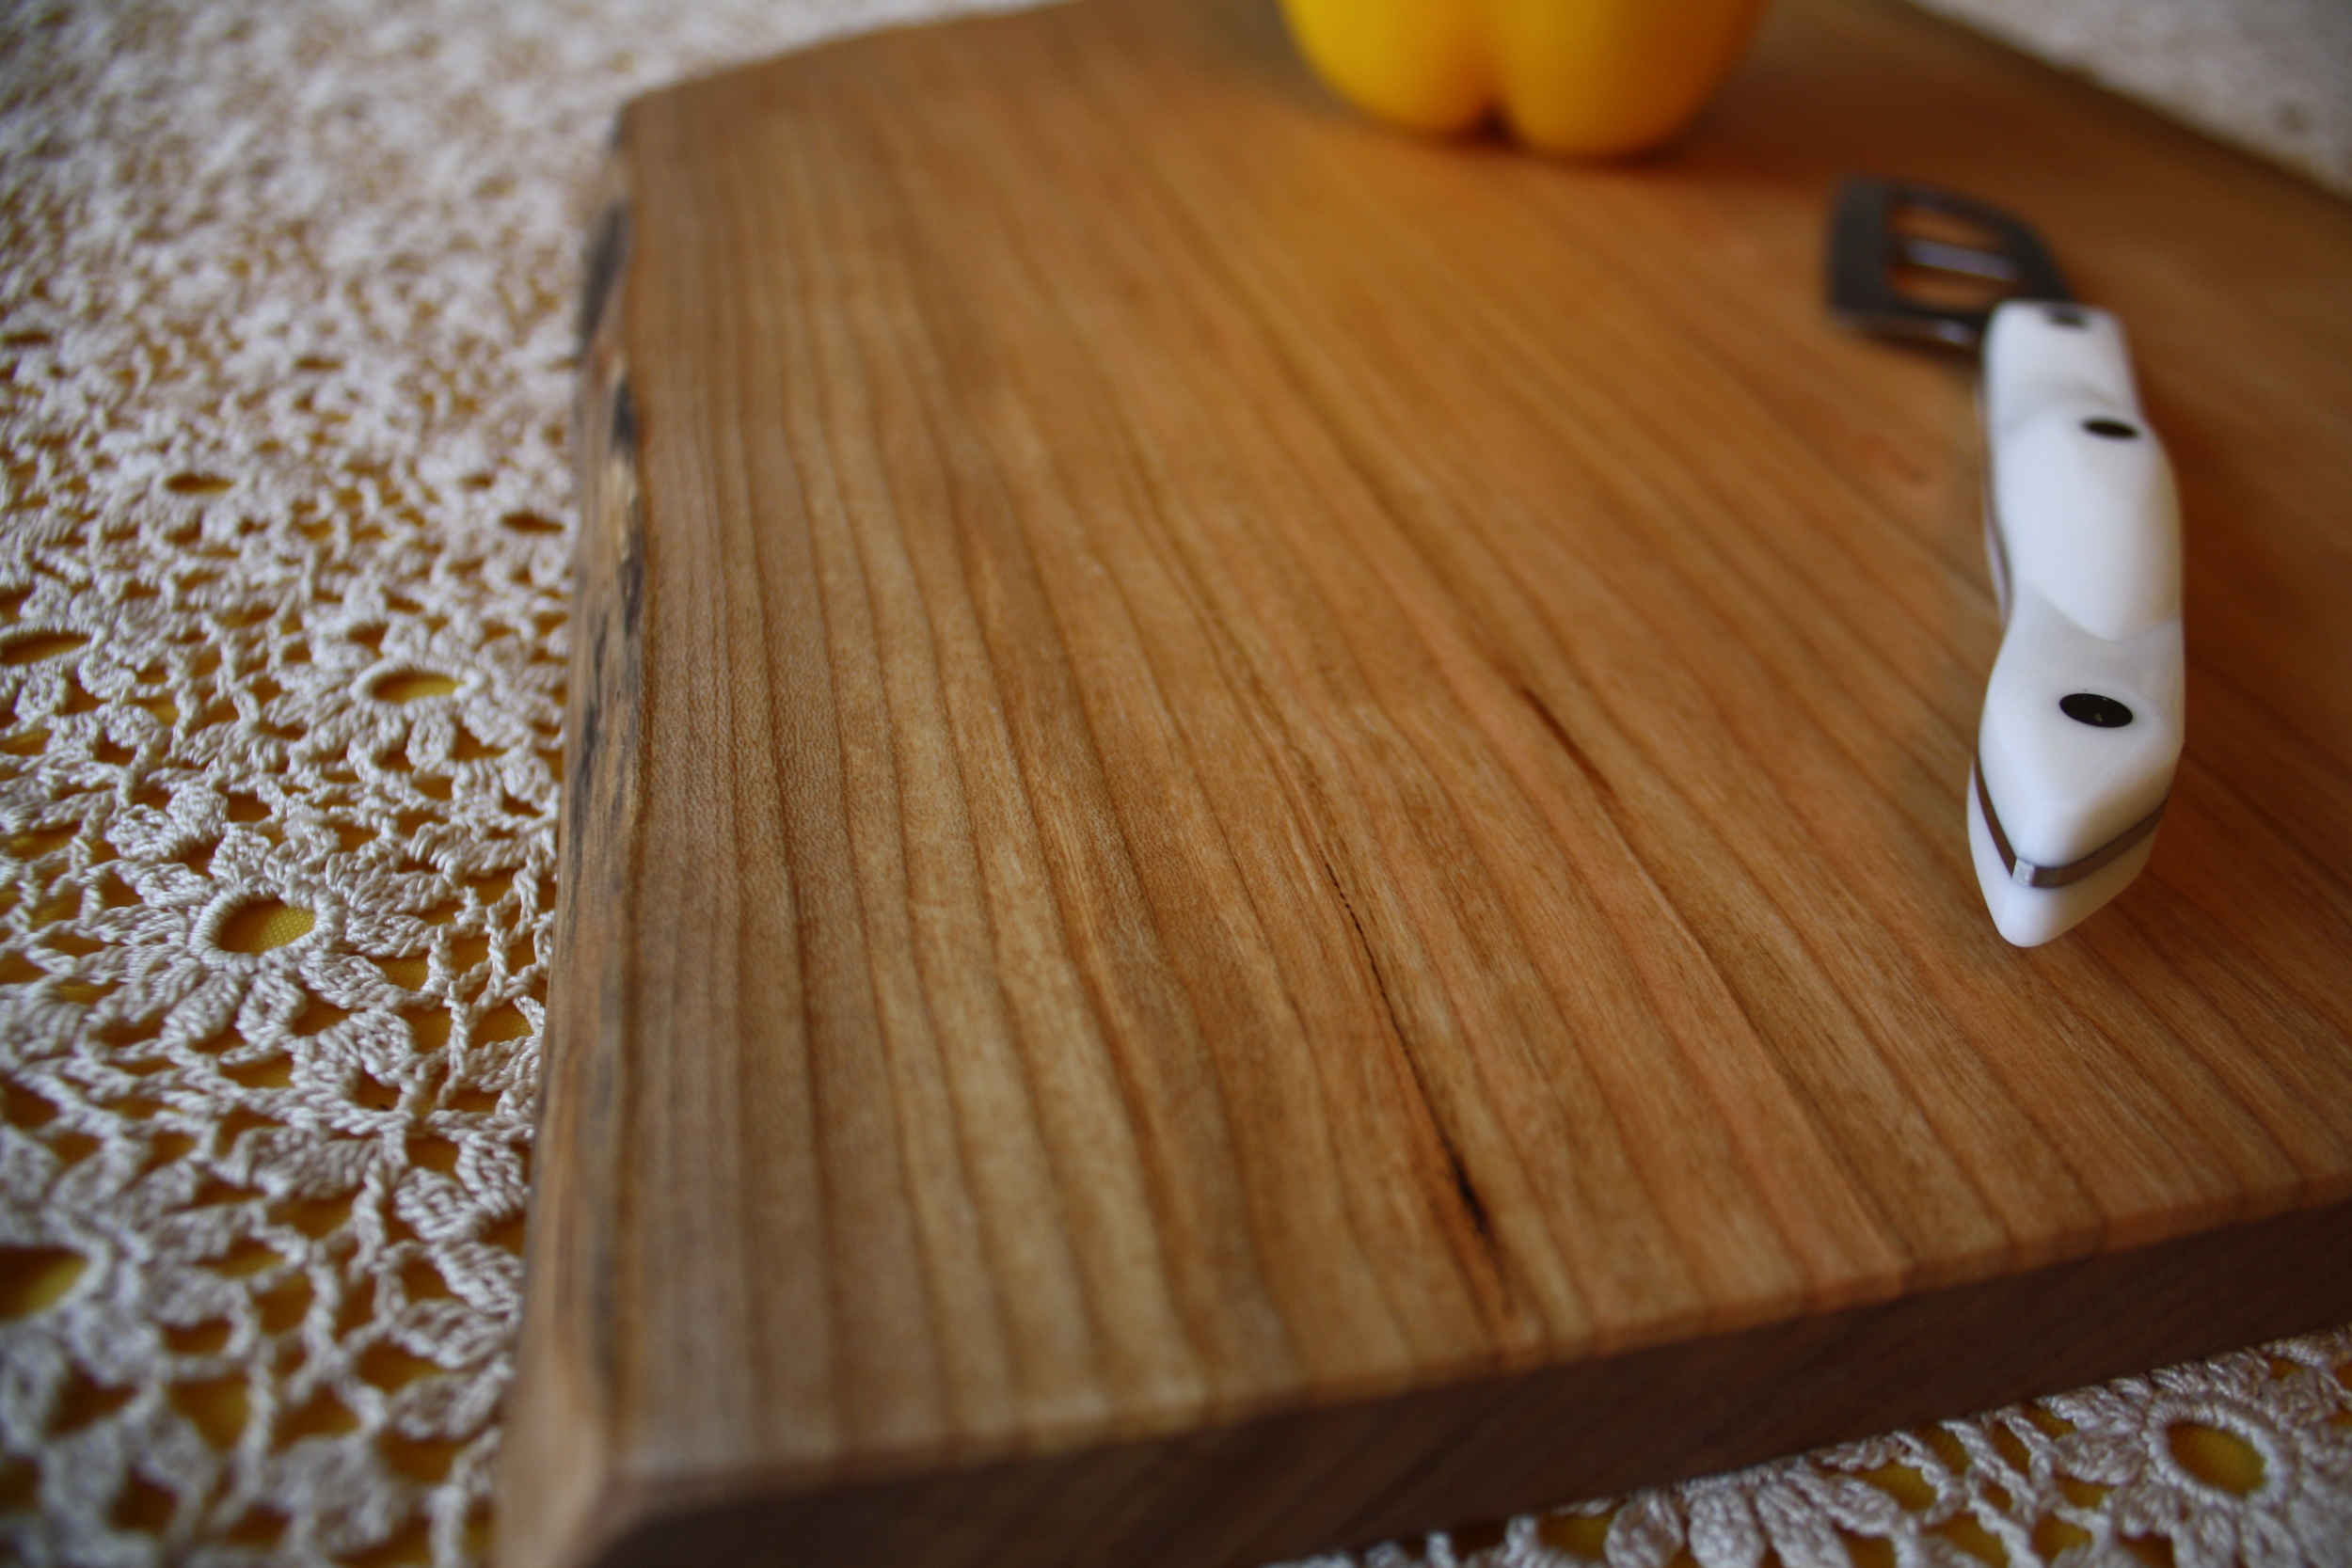 Beeswax & Mineral OIl finish on a cherry cutting board